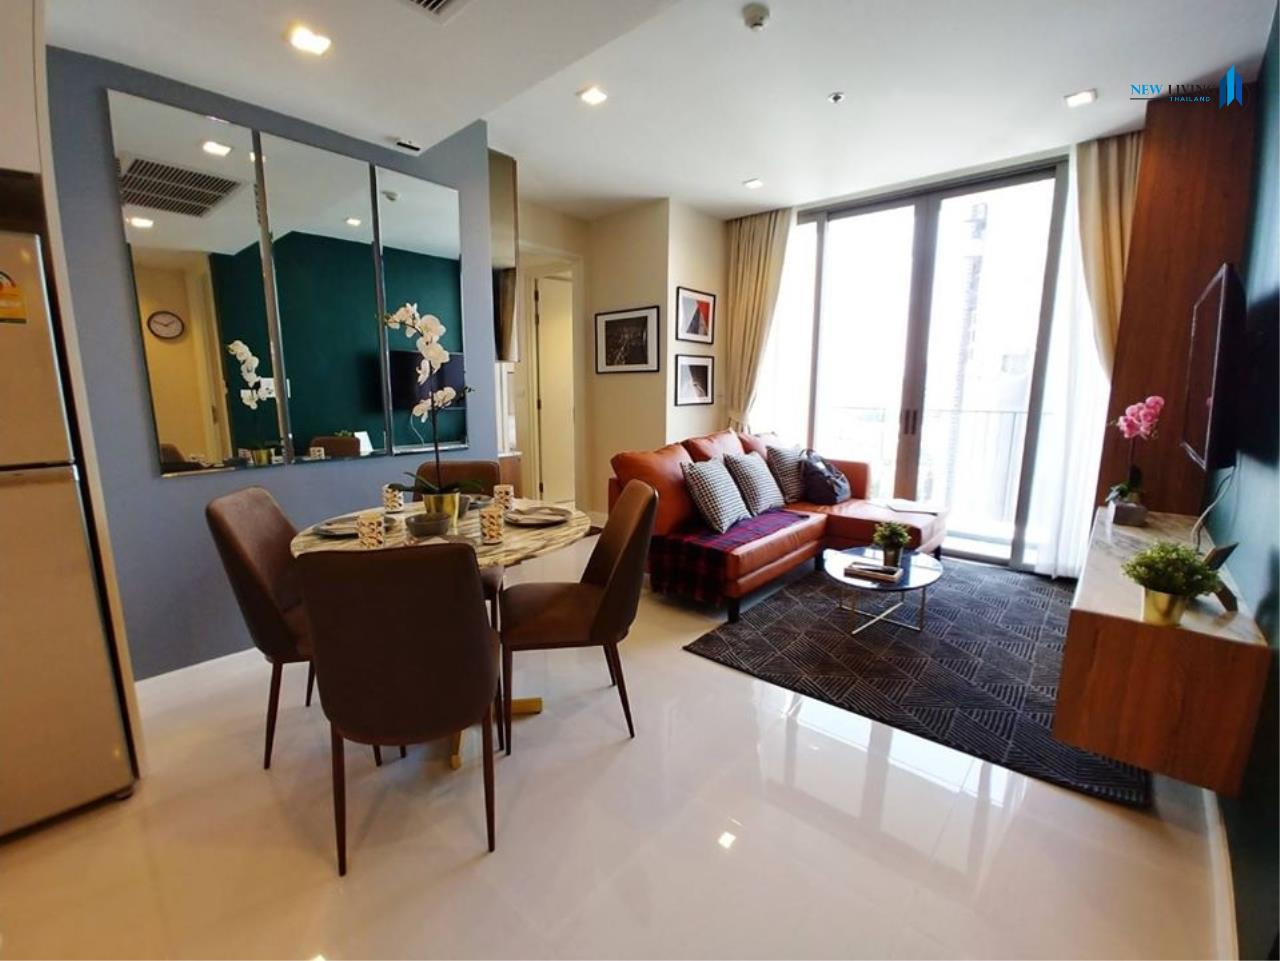 New Living Thailand Agency's +++ Urgent rent  !!! Nara 9, 2 bedrooms, 66 sq.m., fully furnished, garden view, very beautiful room +++ 2